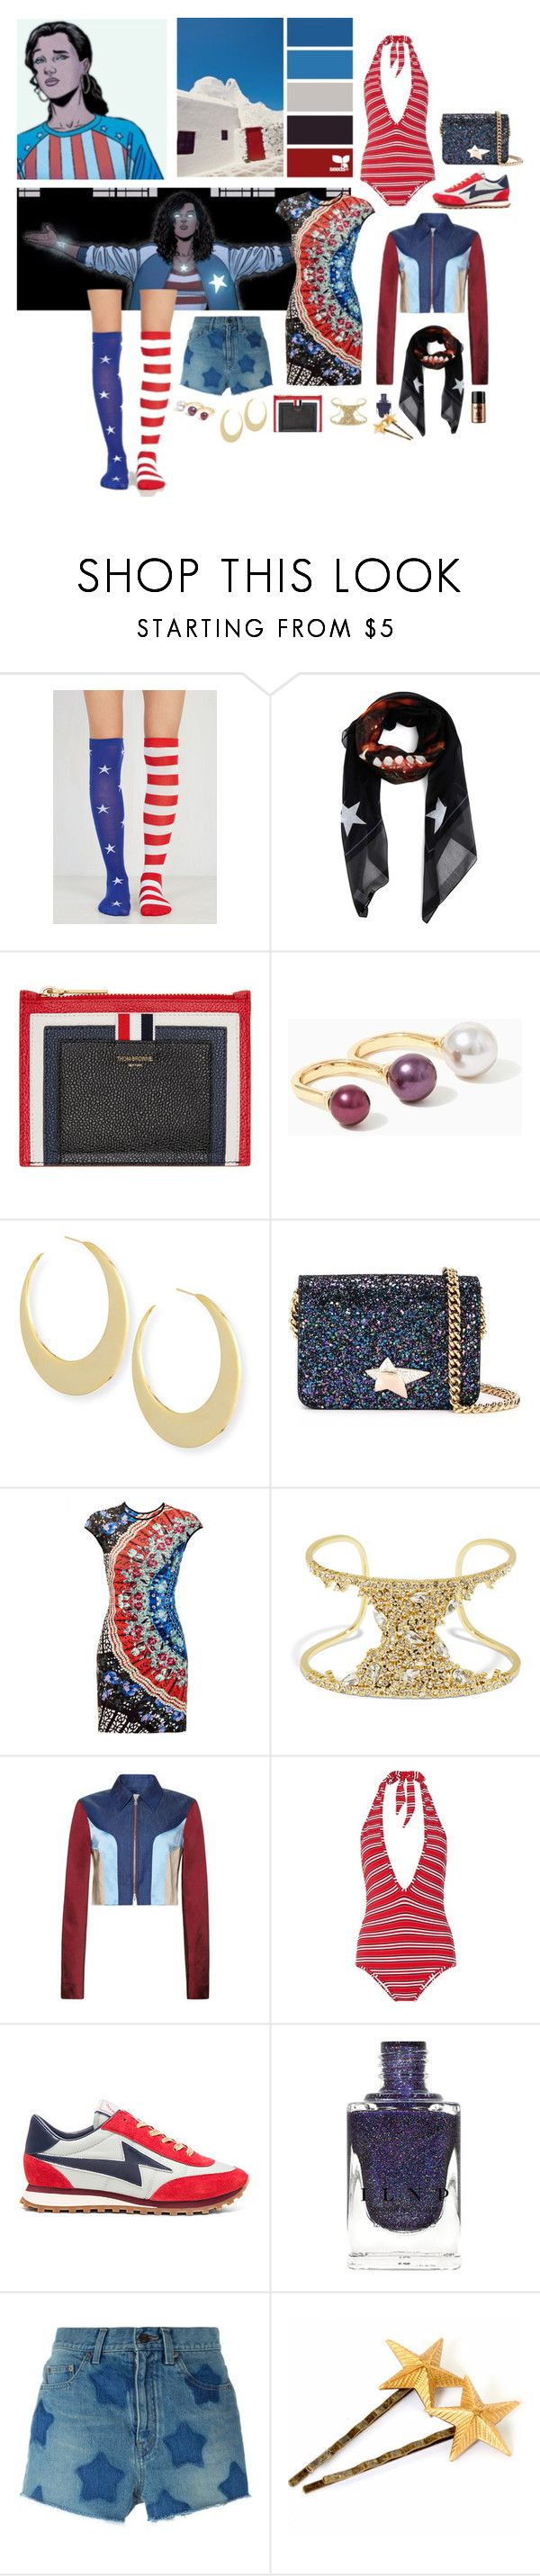 """""""private icon: America Chavez"""" by anglepoise ❤ liked on Polyvore featuring Givenchy, Thom Browne, Rebecca Minkoff, Charlotte Olympia, Clover Canyon, BaubleBar, Jonathan Saunders, Zimmermann, Marc Jacobs and Yves Saint Laurent"""